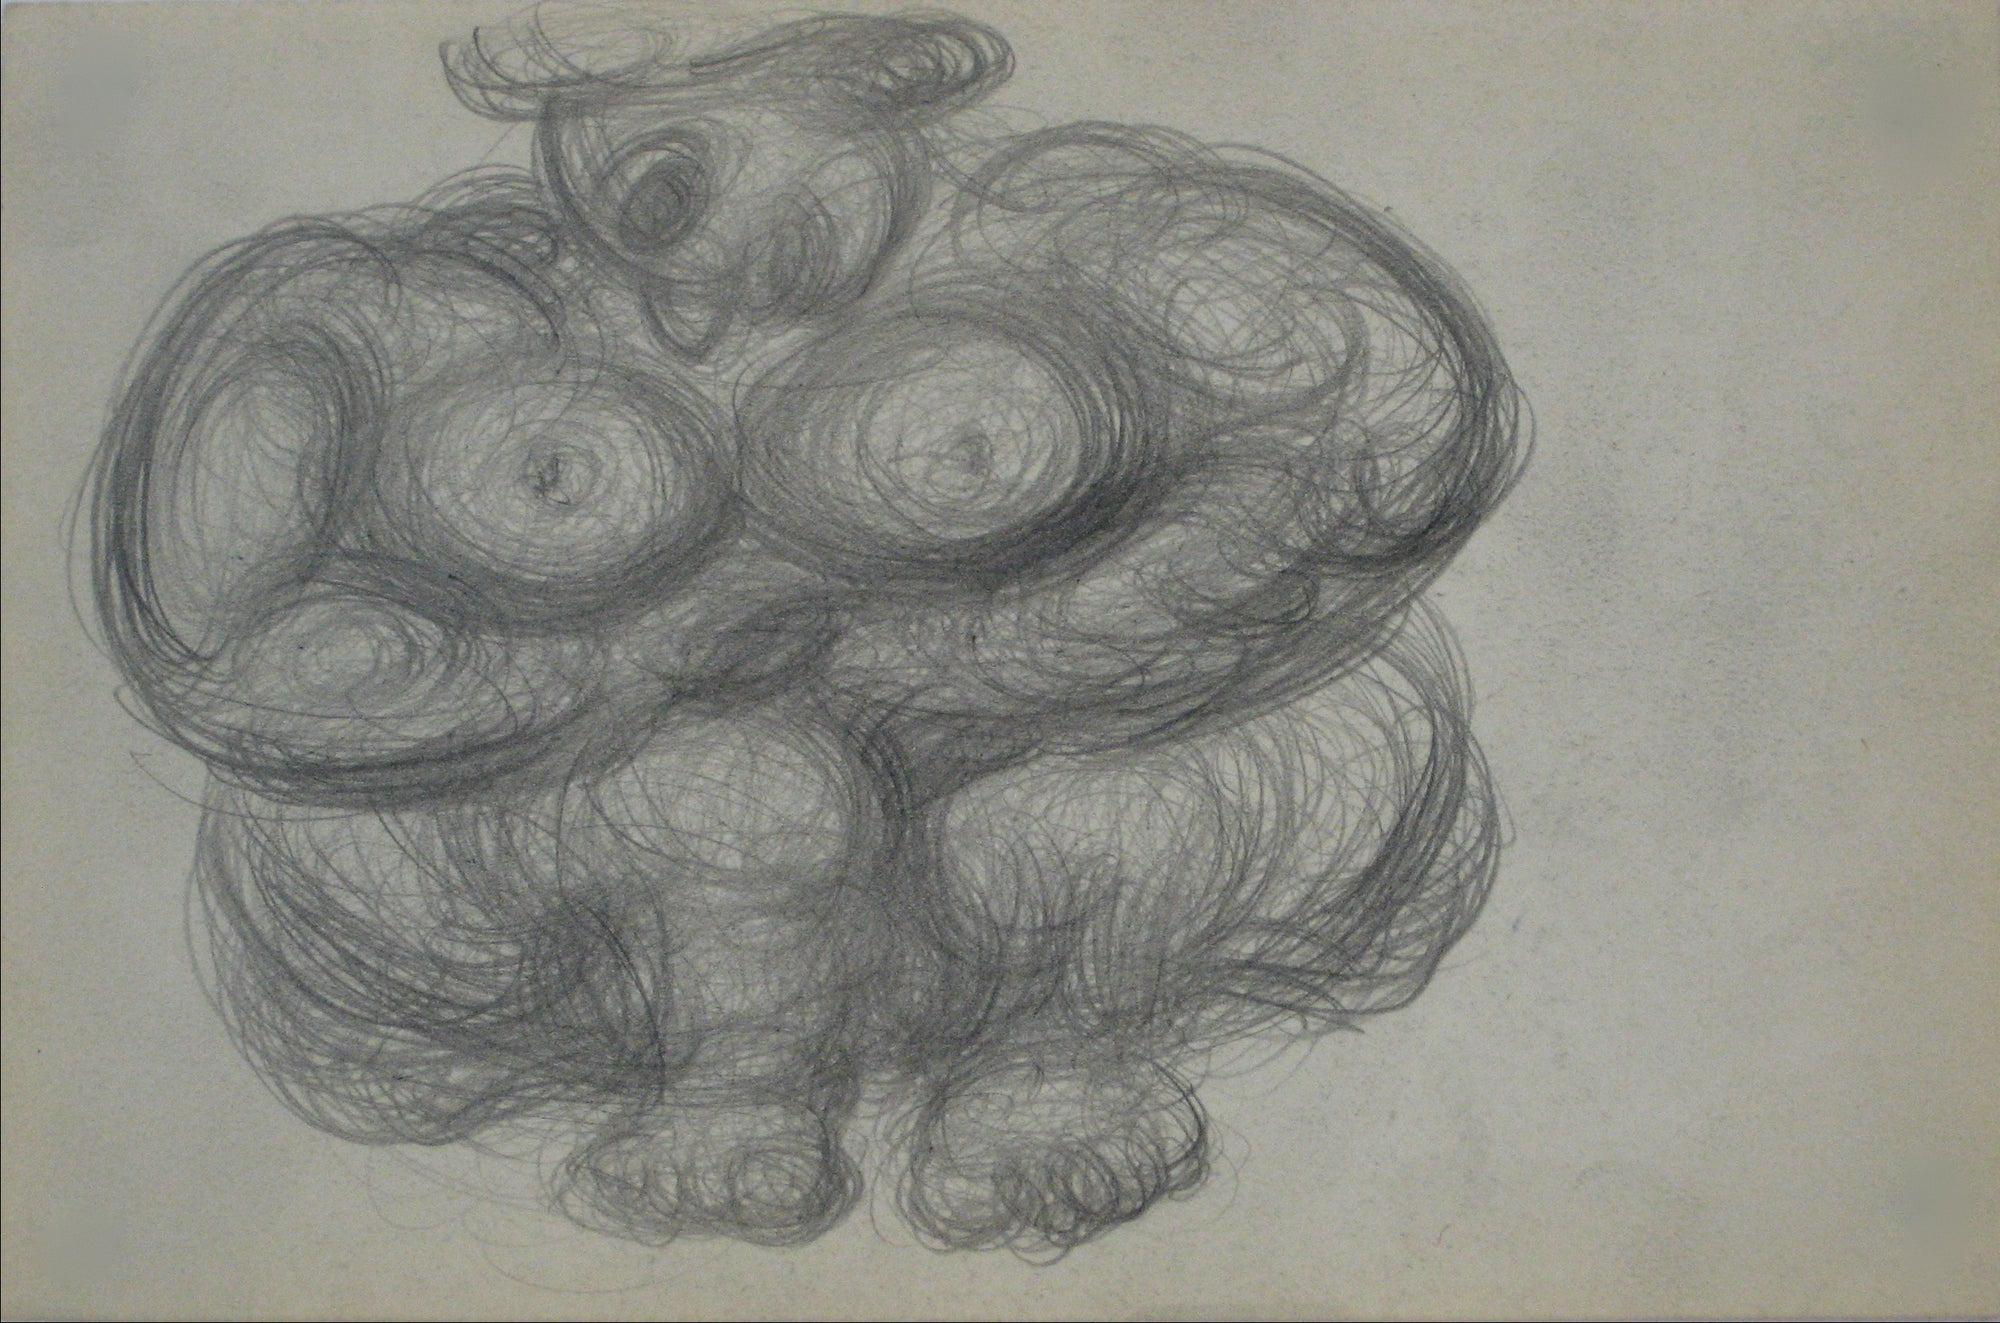 Swirled Abstract Graphite Figure <br>Early-Mid 20th Century <br><br>#14086